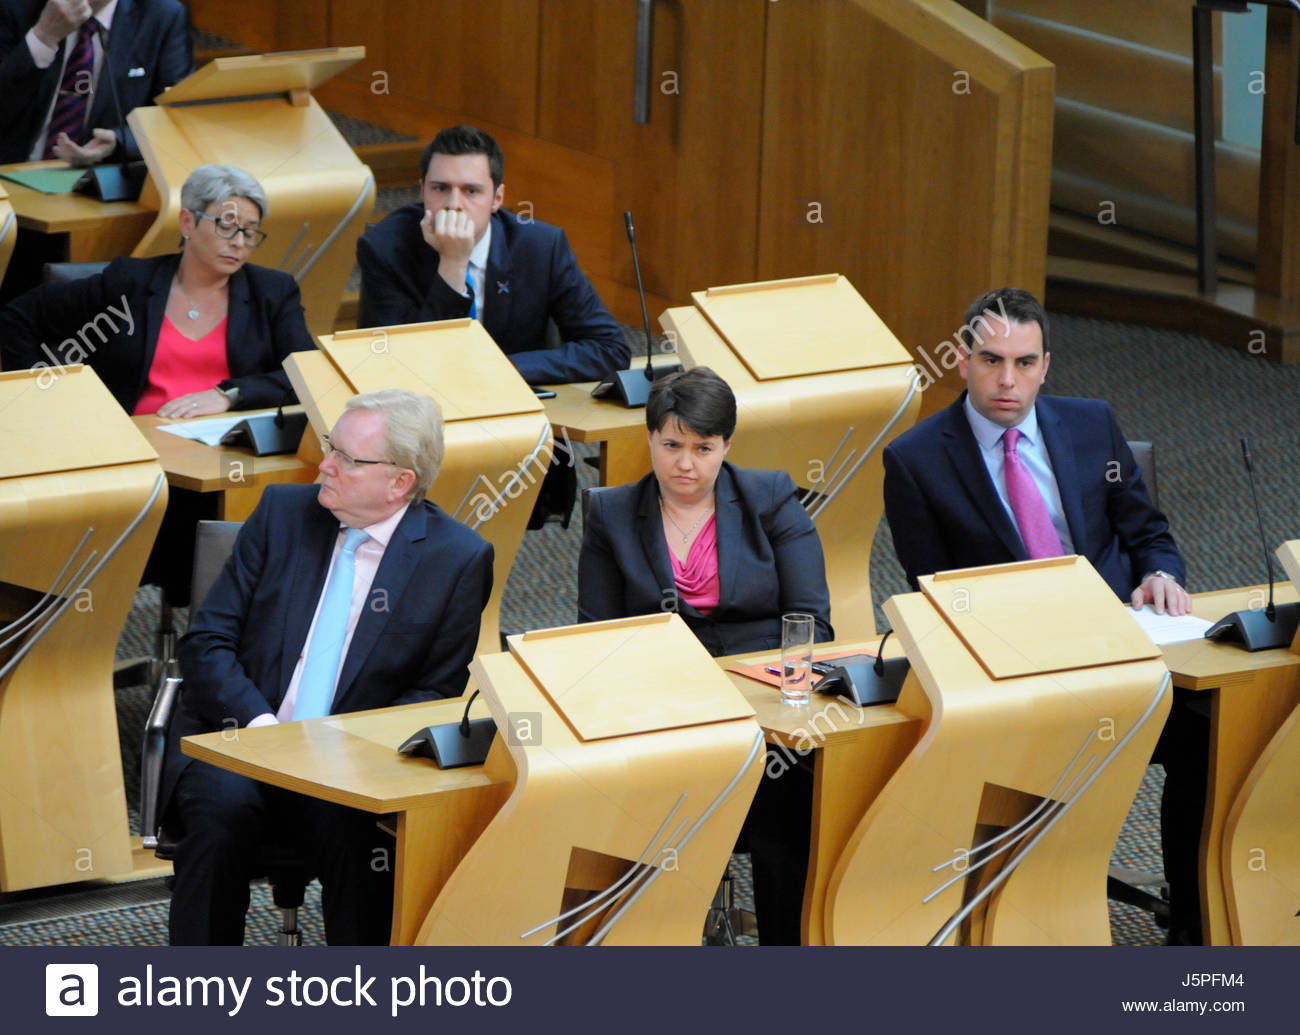 Edinburgh, UK. 18 May, 2017.Ruth Davidson during First Ministers Questions. Roger Gaisford/Alamy Live News. - Stock Image